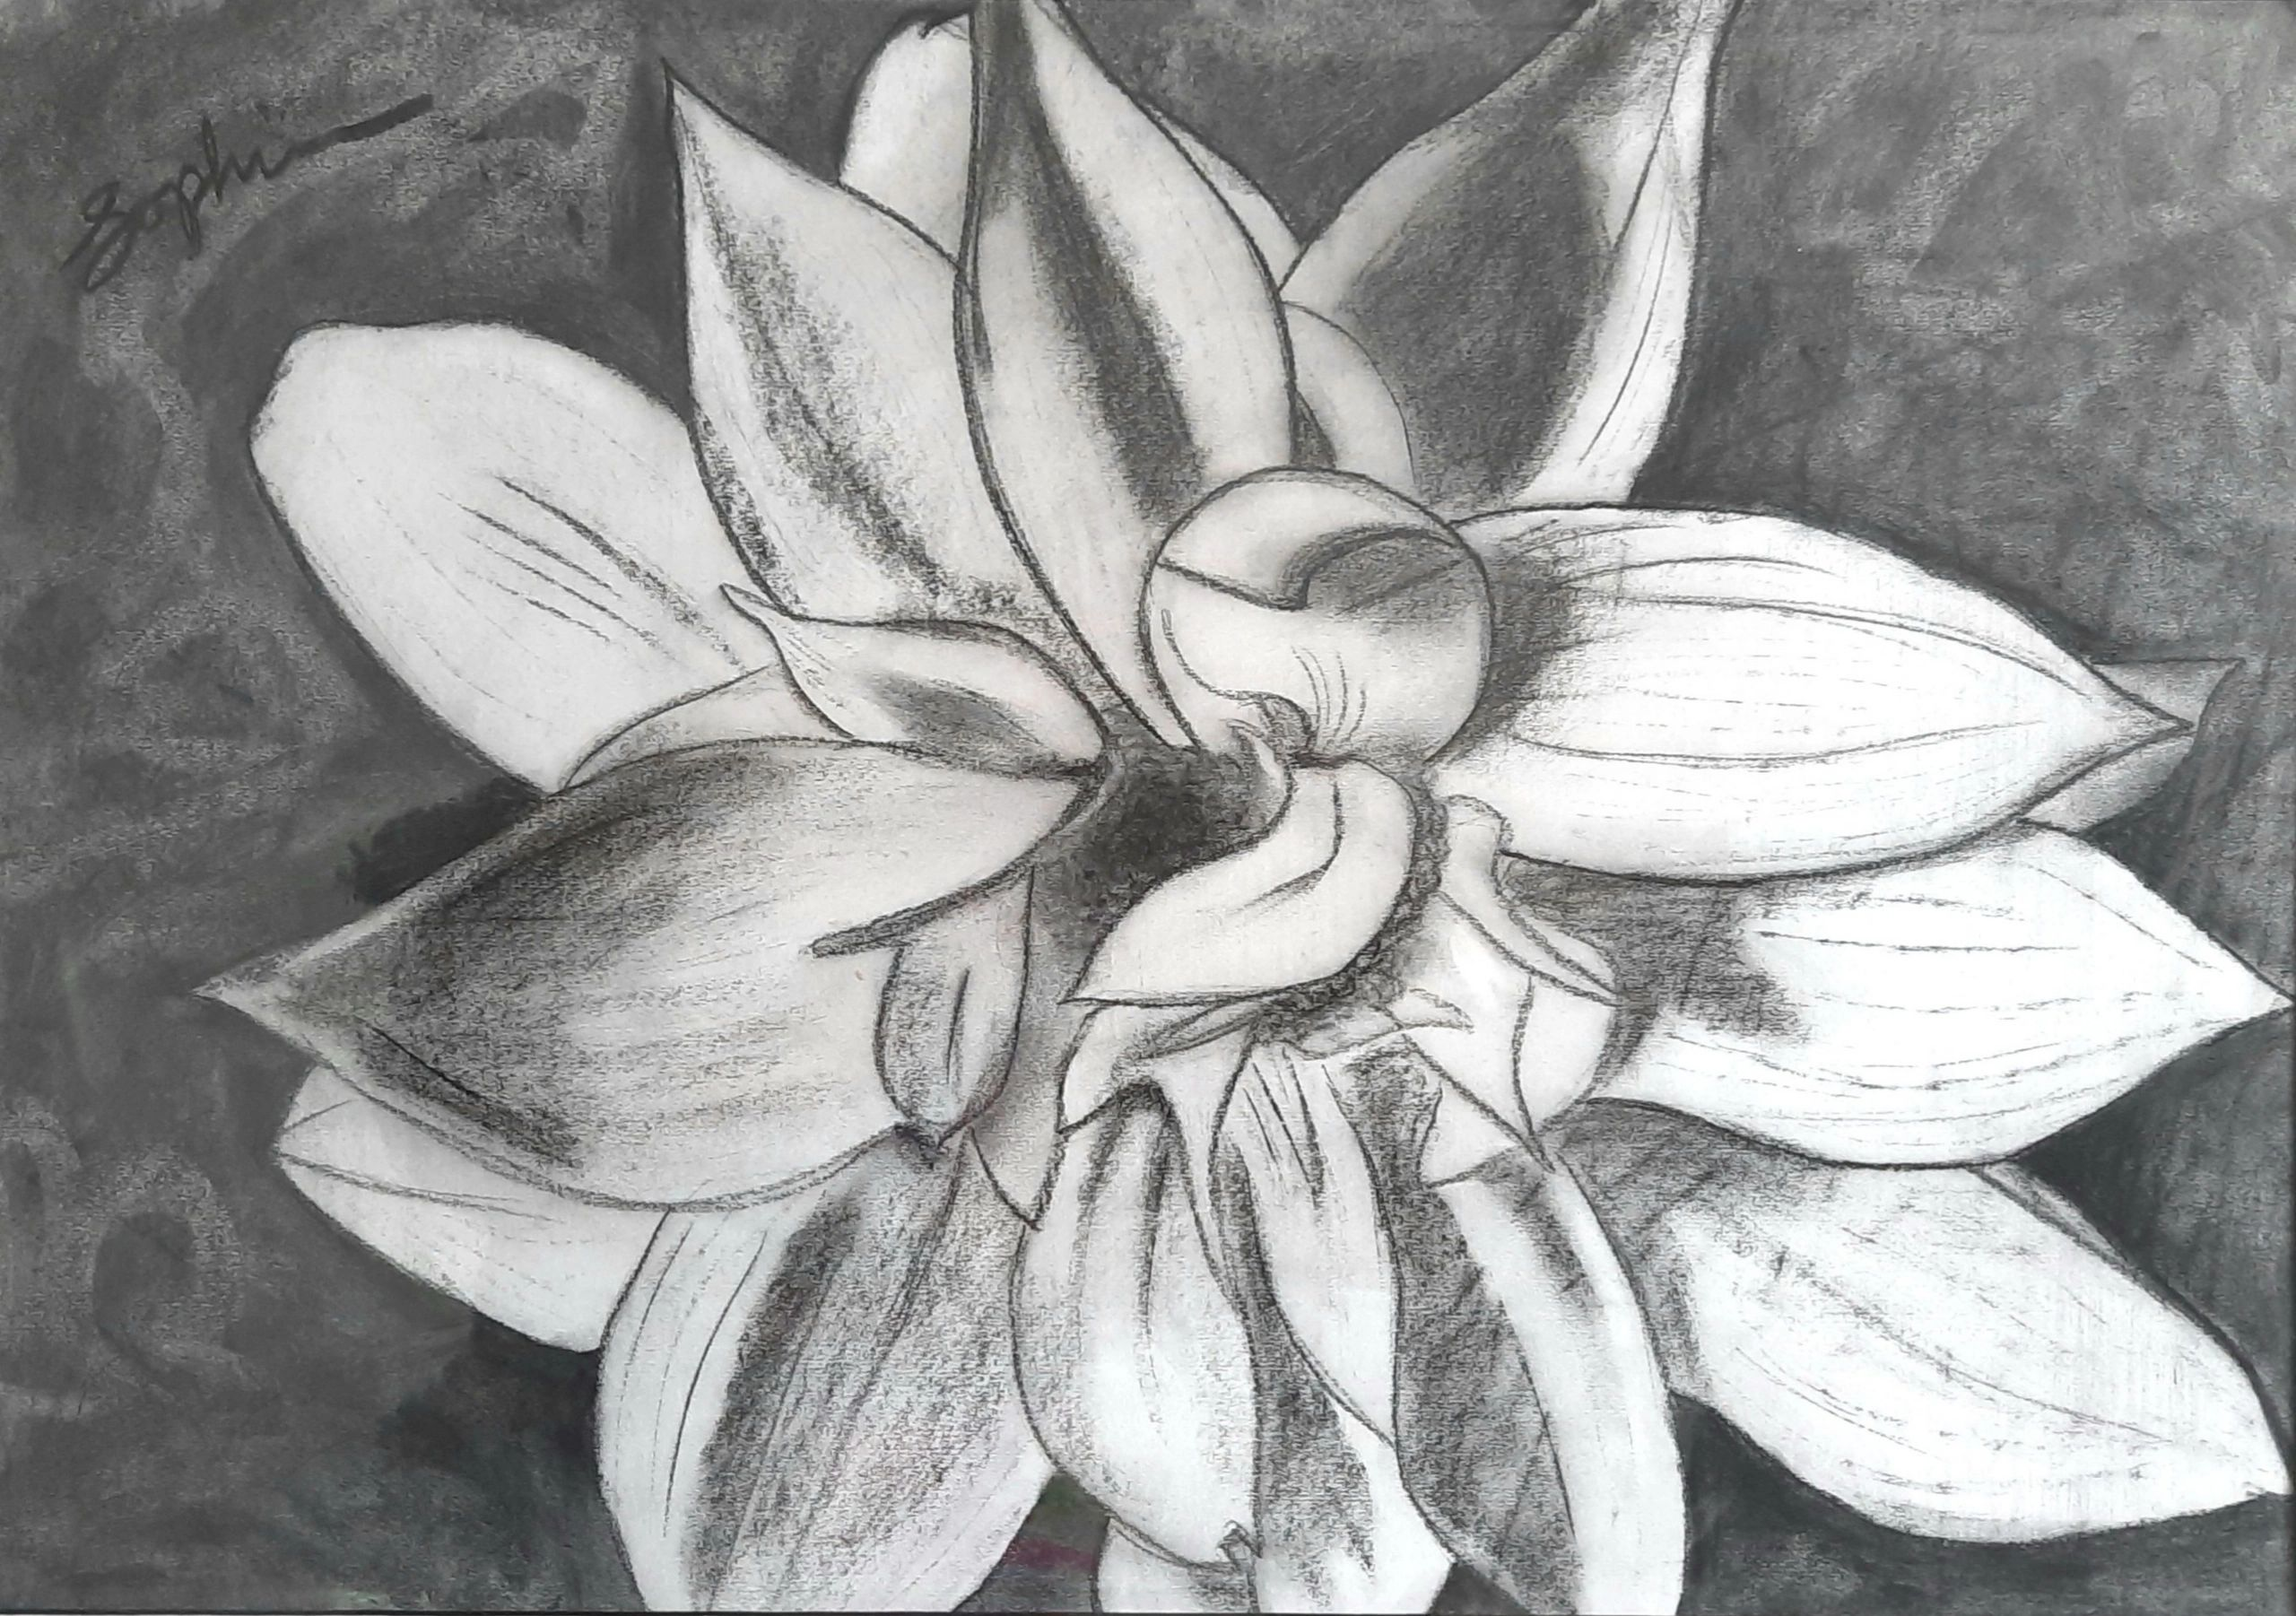 A large unfurling charcoal flower on paper.